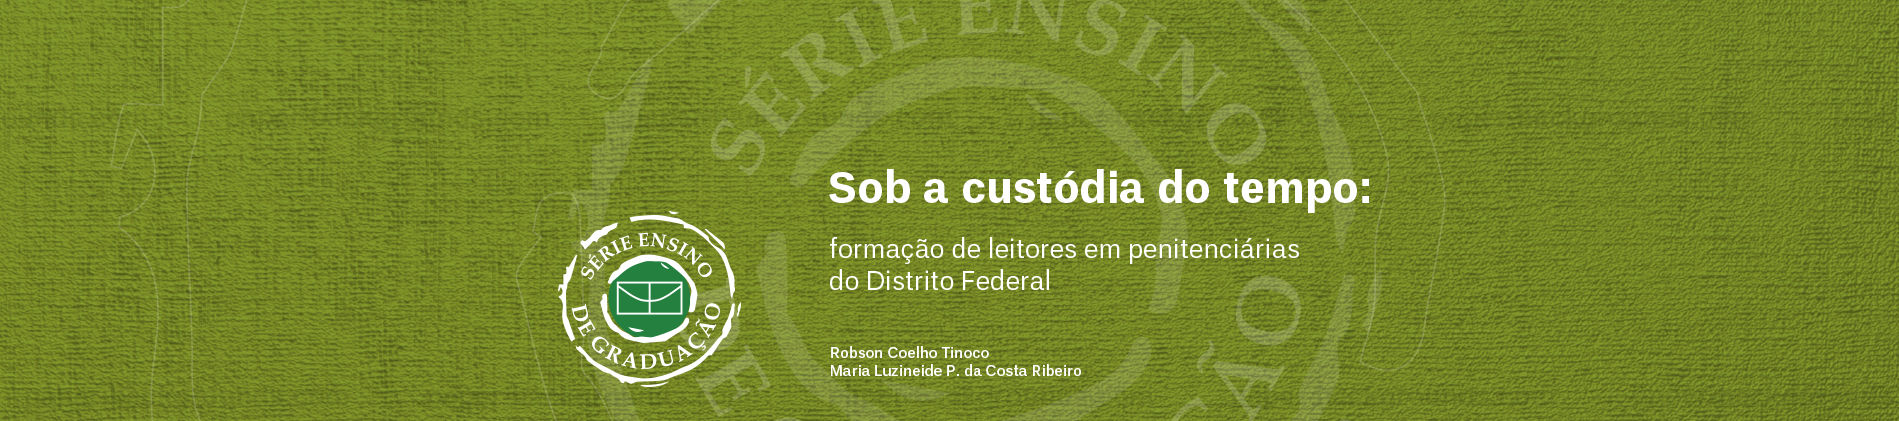 Sob a custodia do tempo